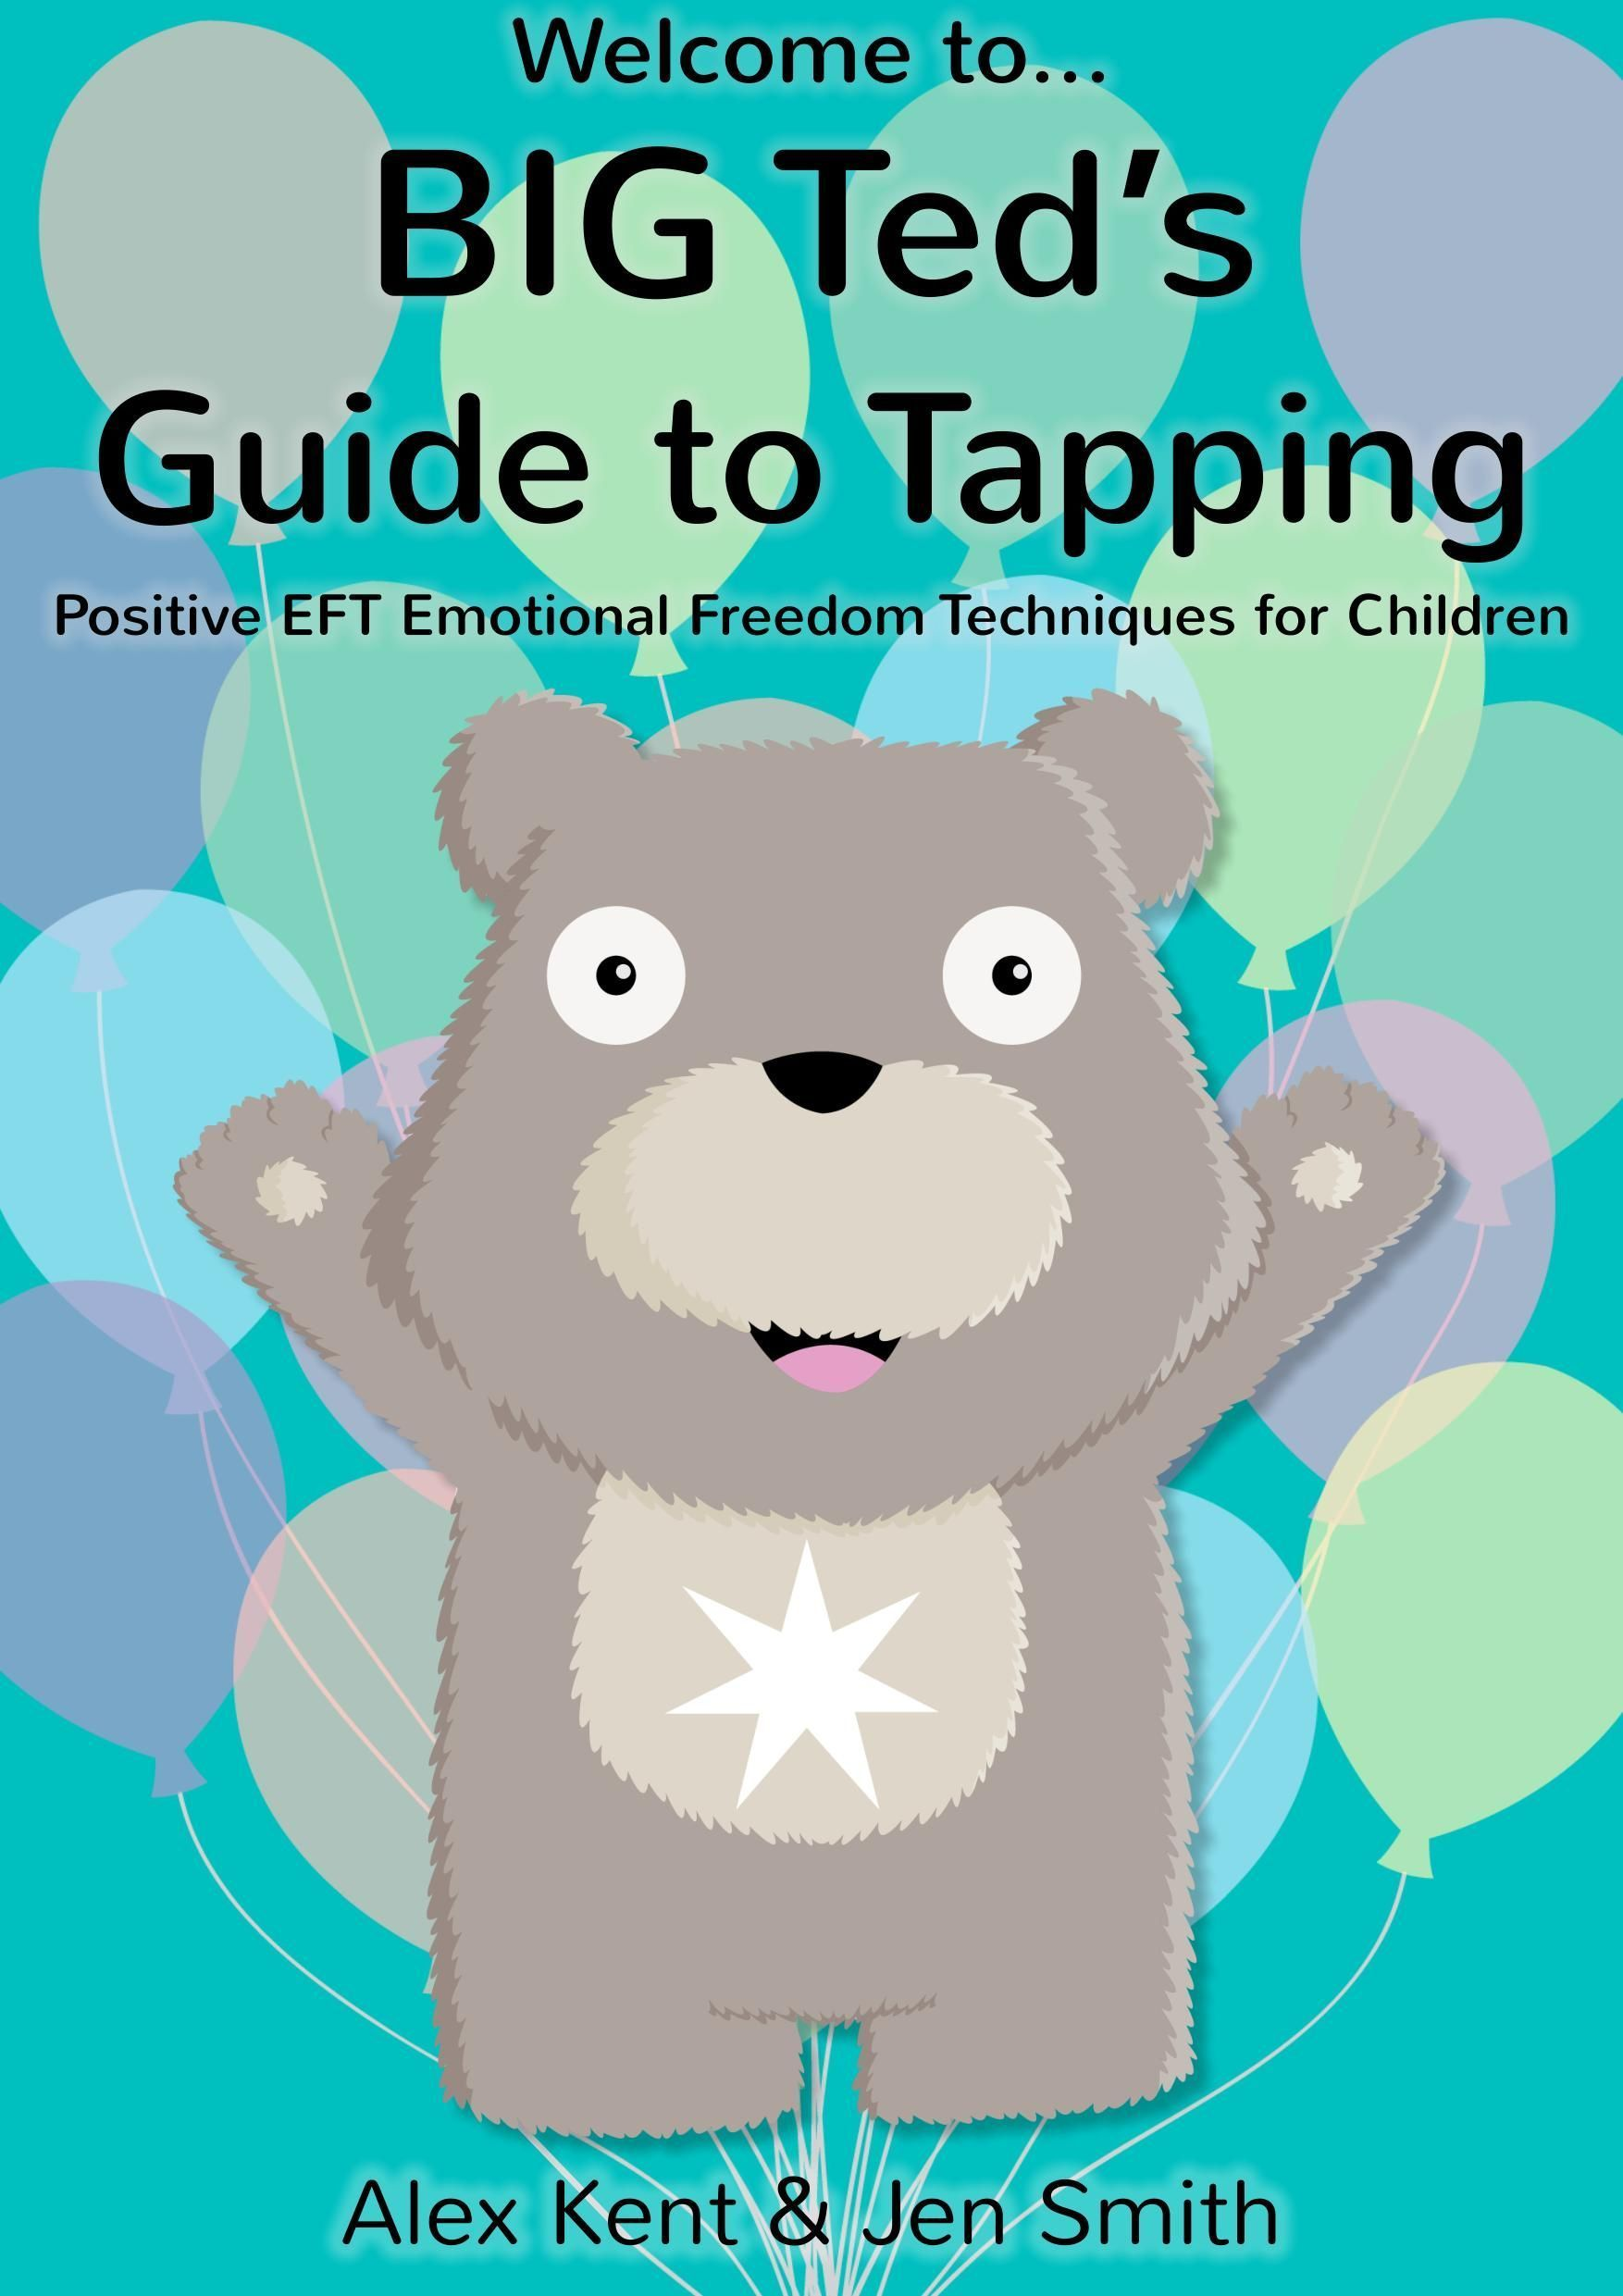 Eft Is A Great Tool For Classroom Use Help Kids Relax At